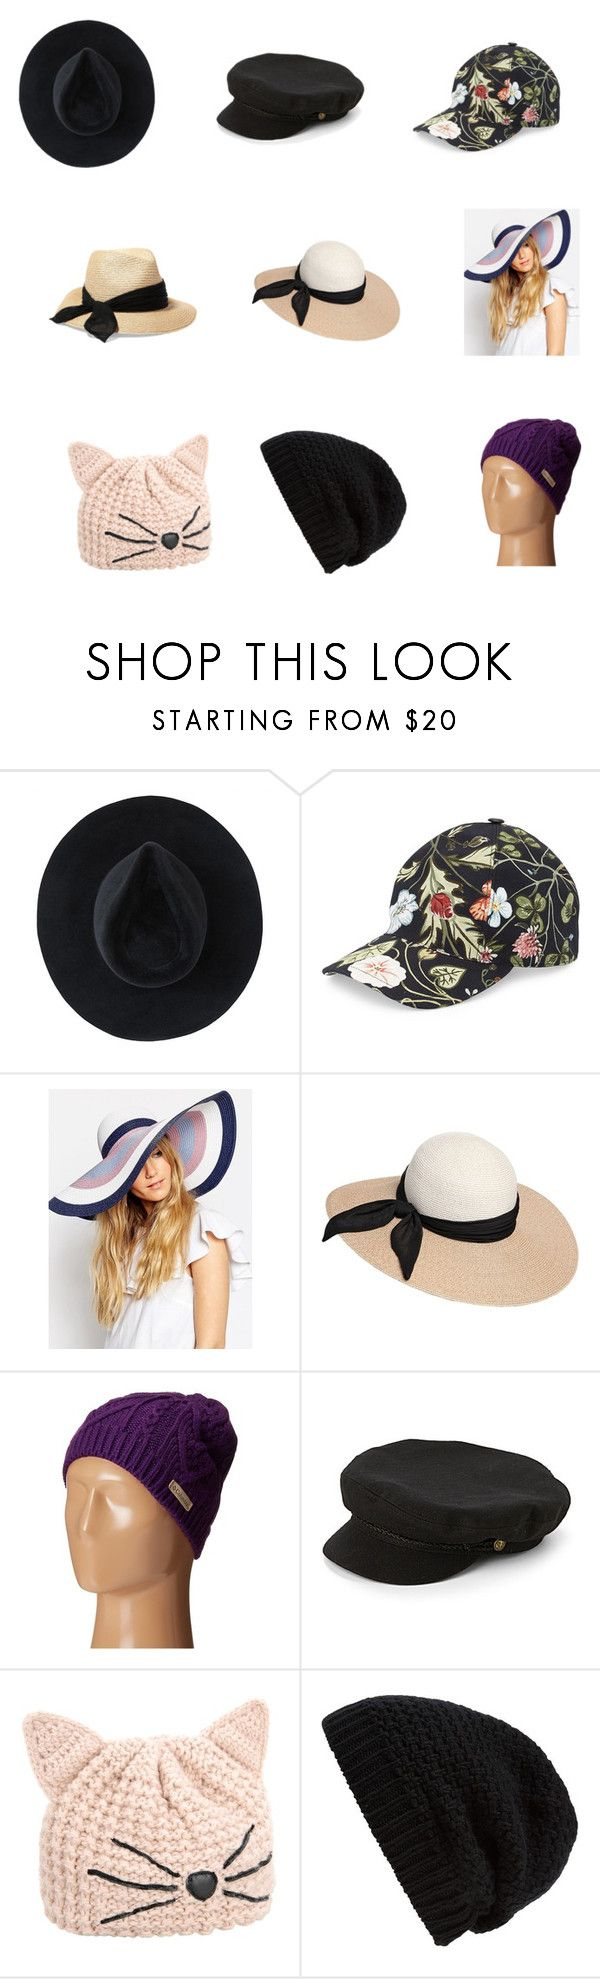 """""""Fav Hats"""" by mooreelizabeth on Polyvore featuring Ryan Roche, Gucci, ASOS, Eugenia Kim, Columbia, Brixton, Karl Lagerfeld and Rick Owens"""